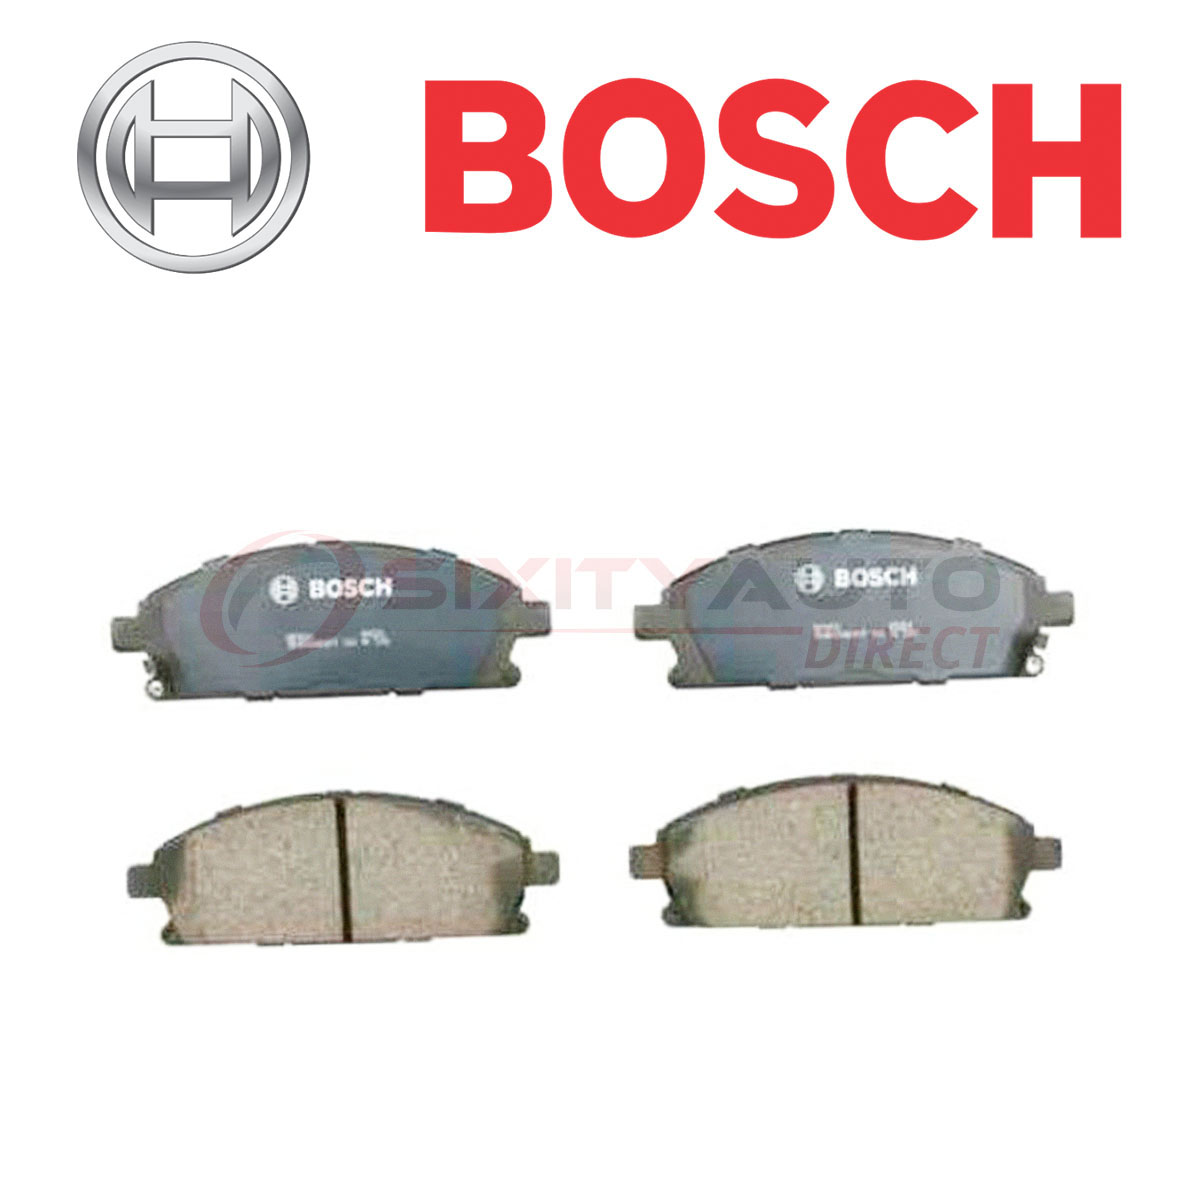 Bosch QuietCast Disc Brake Pads W Hardware For 2003-2006